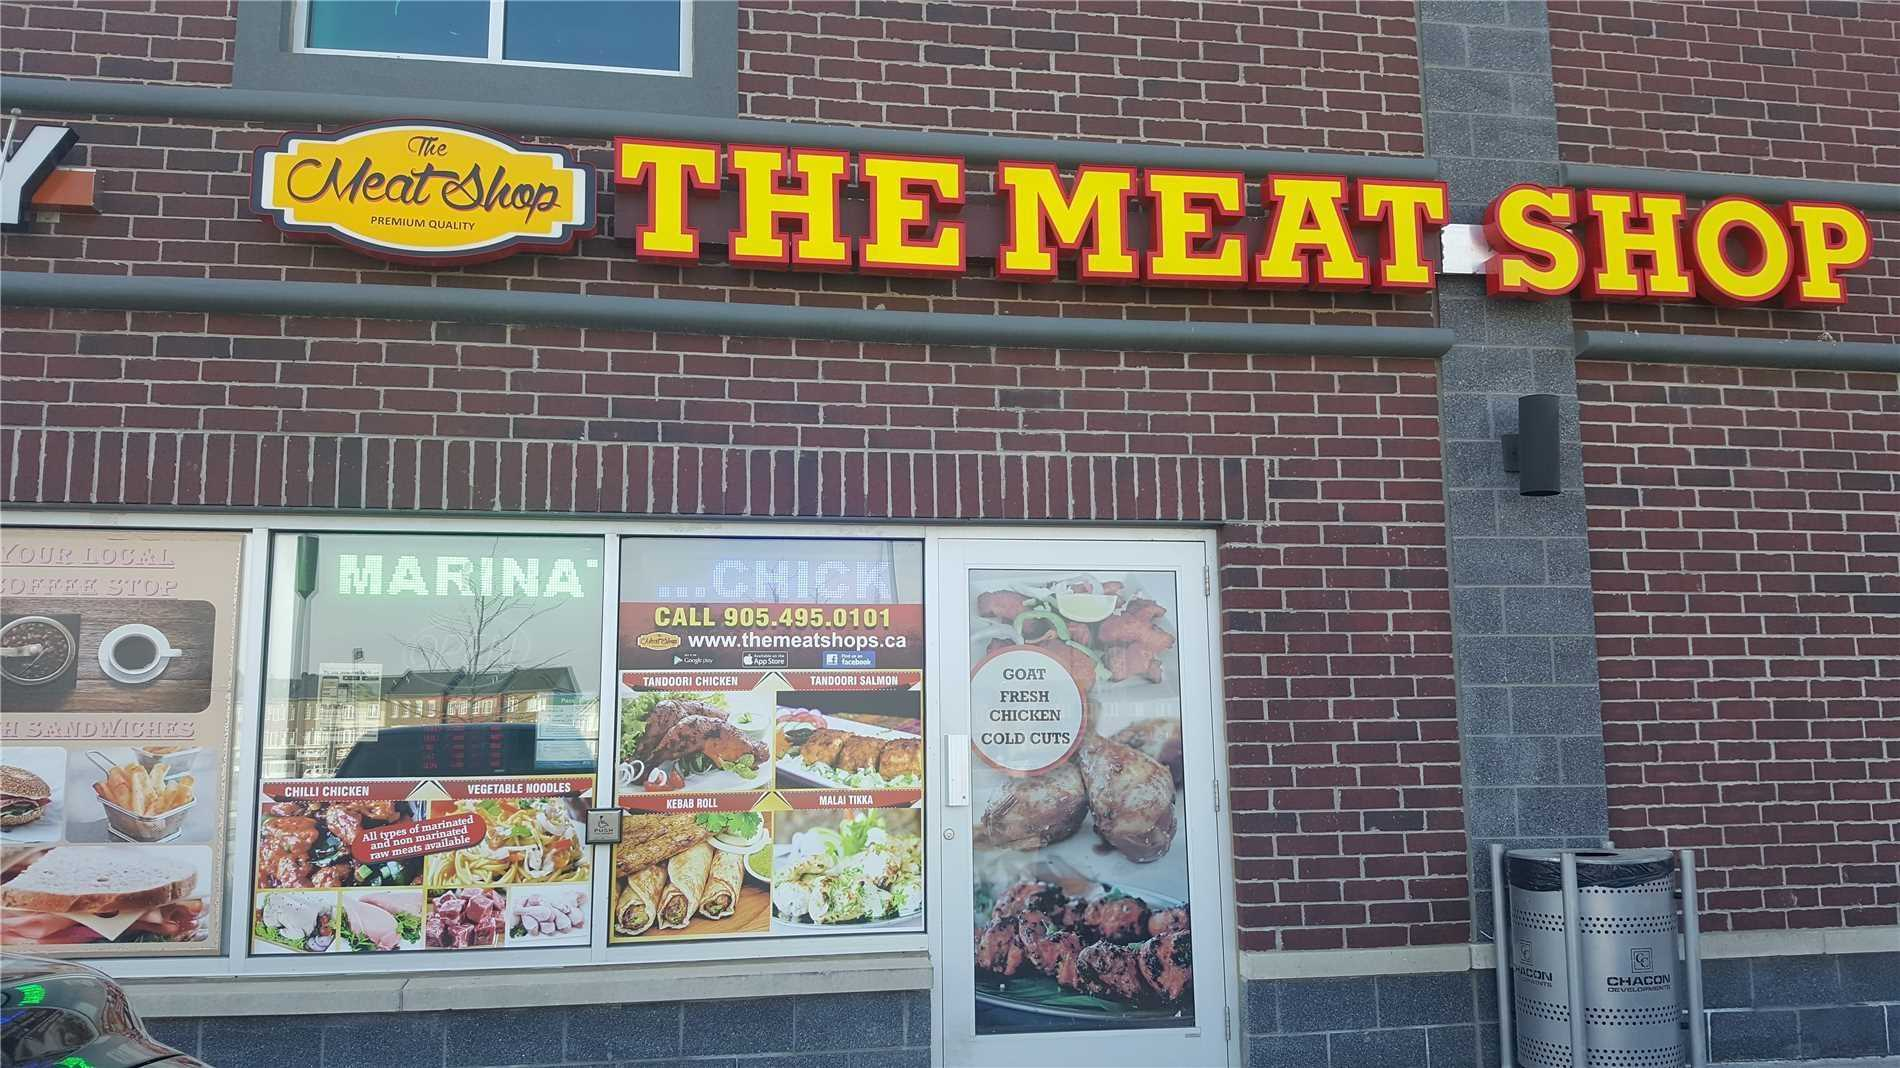 Very Neat & Clean Meat Shop Approximately 2 Years New, Very Well Running & Growing Day By Day. Only Meat Shop In Area. Good Opportunity For New Comers Or Franchiser Who Is Looking For Running Meat Shop. All Equipment Is Owned, Approximately $16,000 Per Month Sale And Low Rent Is Good Lease 5+5. Don't Miss It!